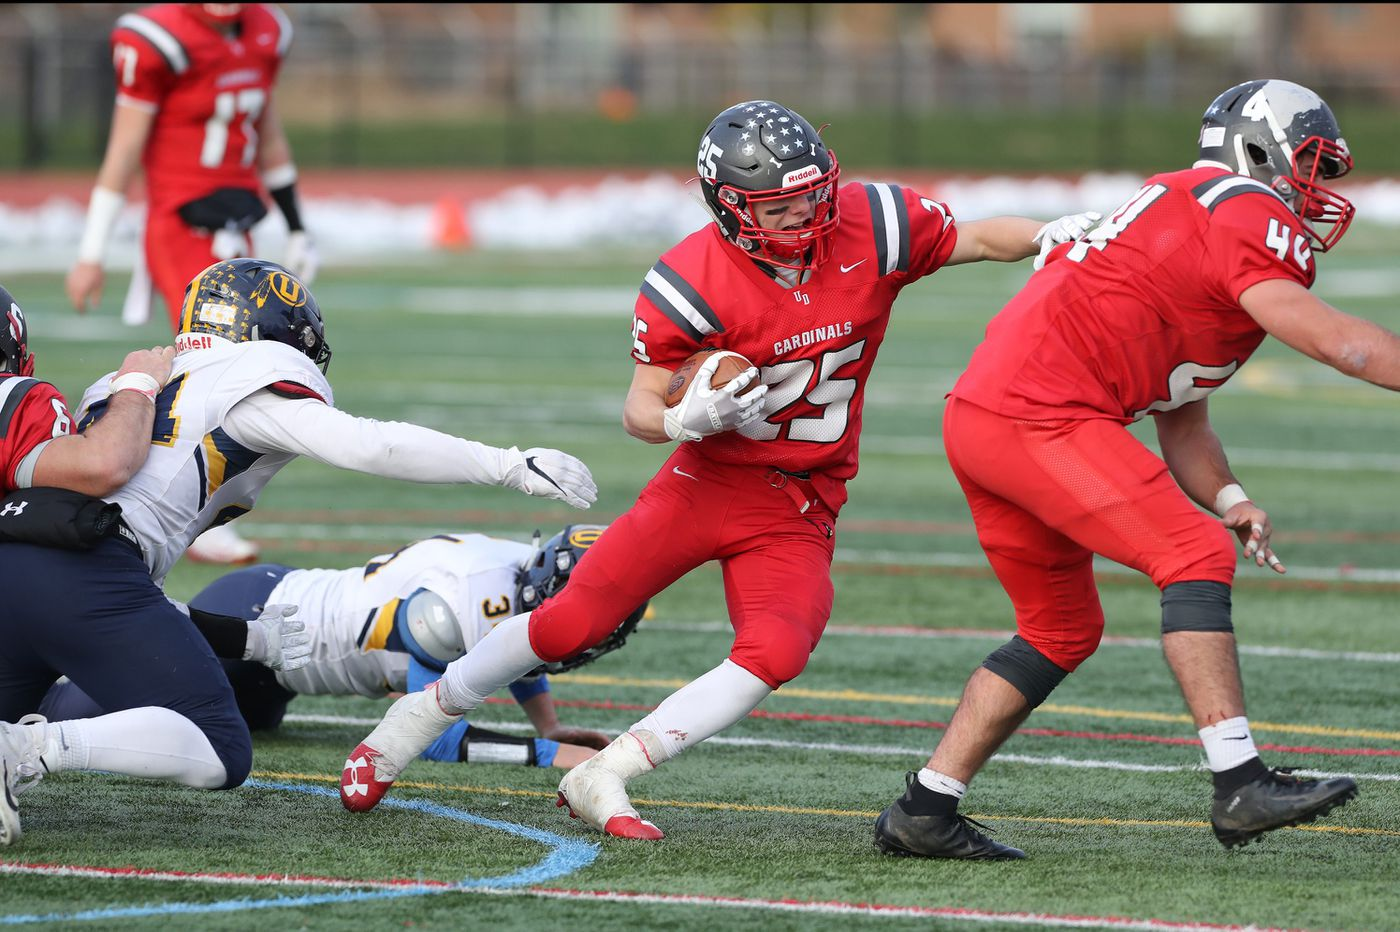 Lucas Roselli, Upper Dublin trounce Unionville in District 1 Class 5A football semifinal